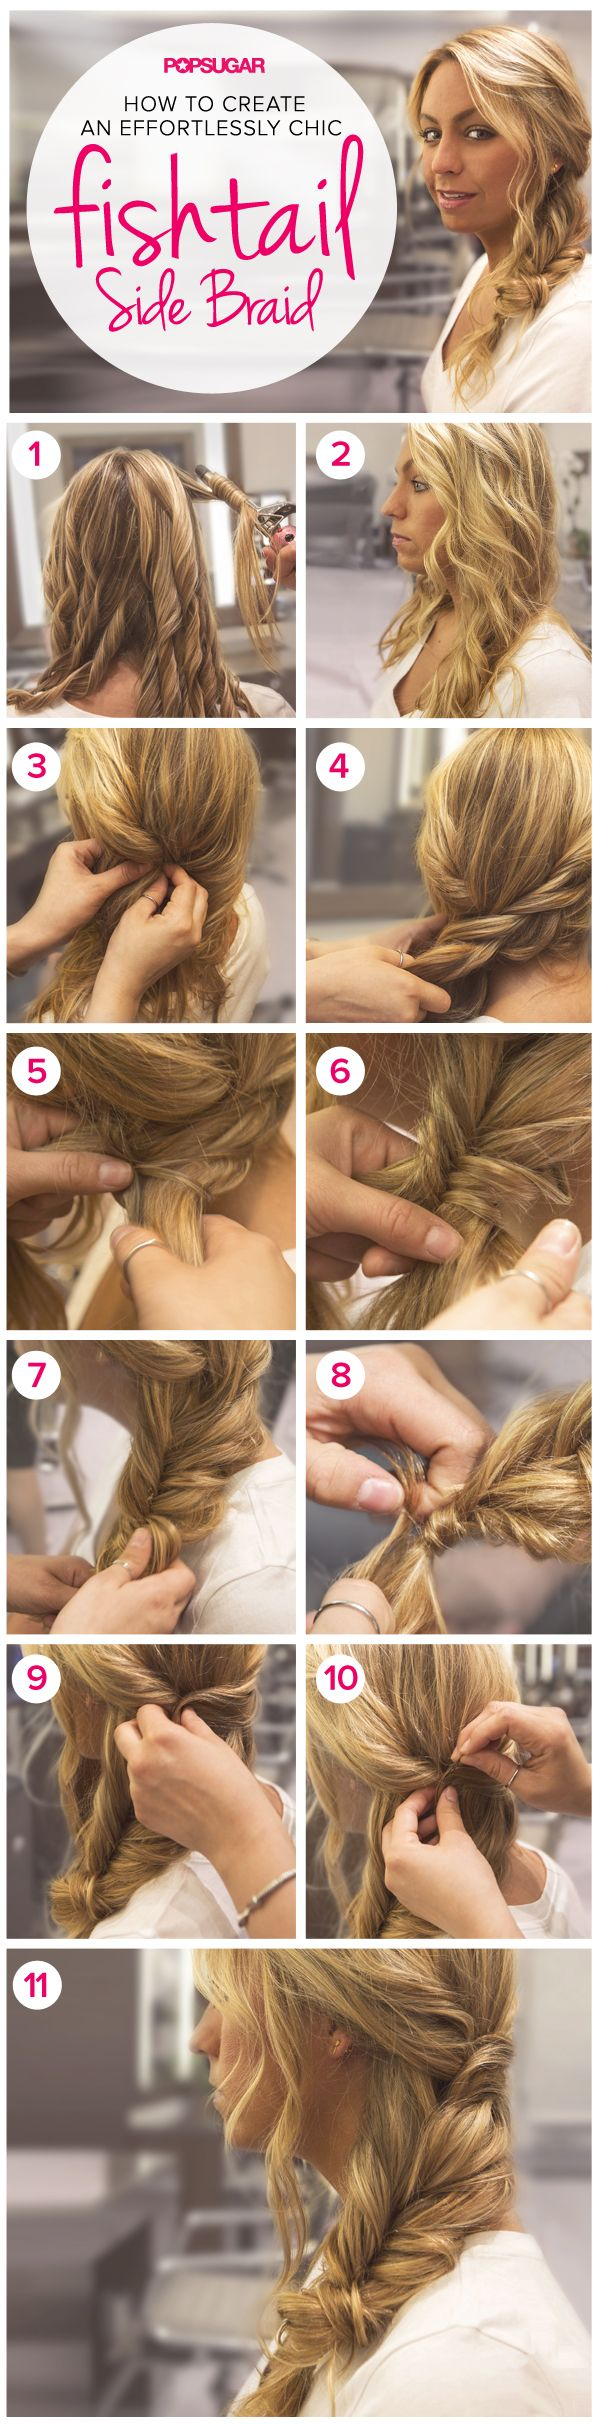 Learn this boho chic side fishtail braid. Perfect for Summer! #hair #braids